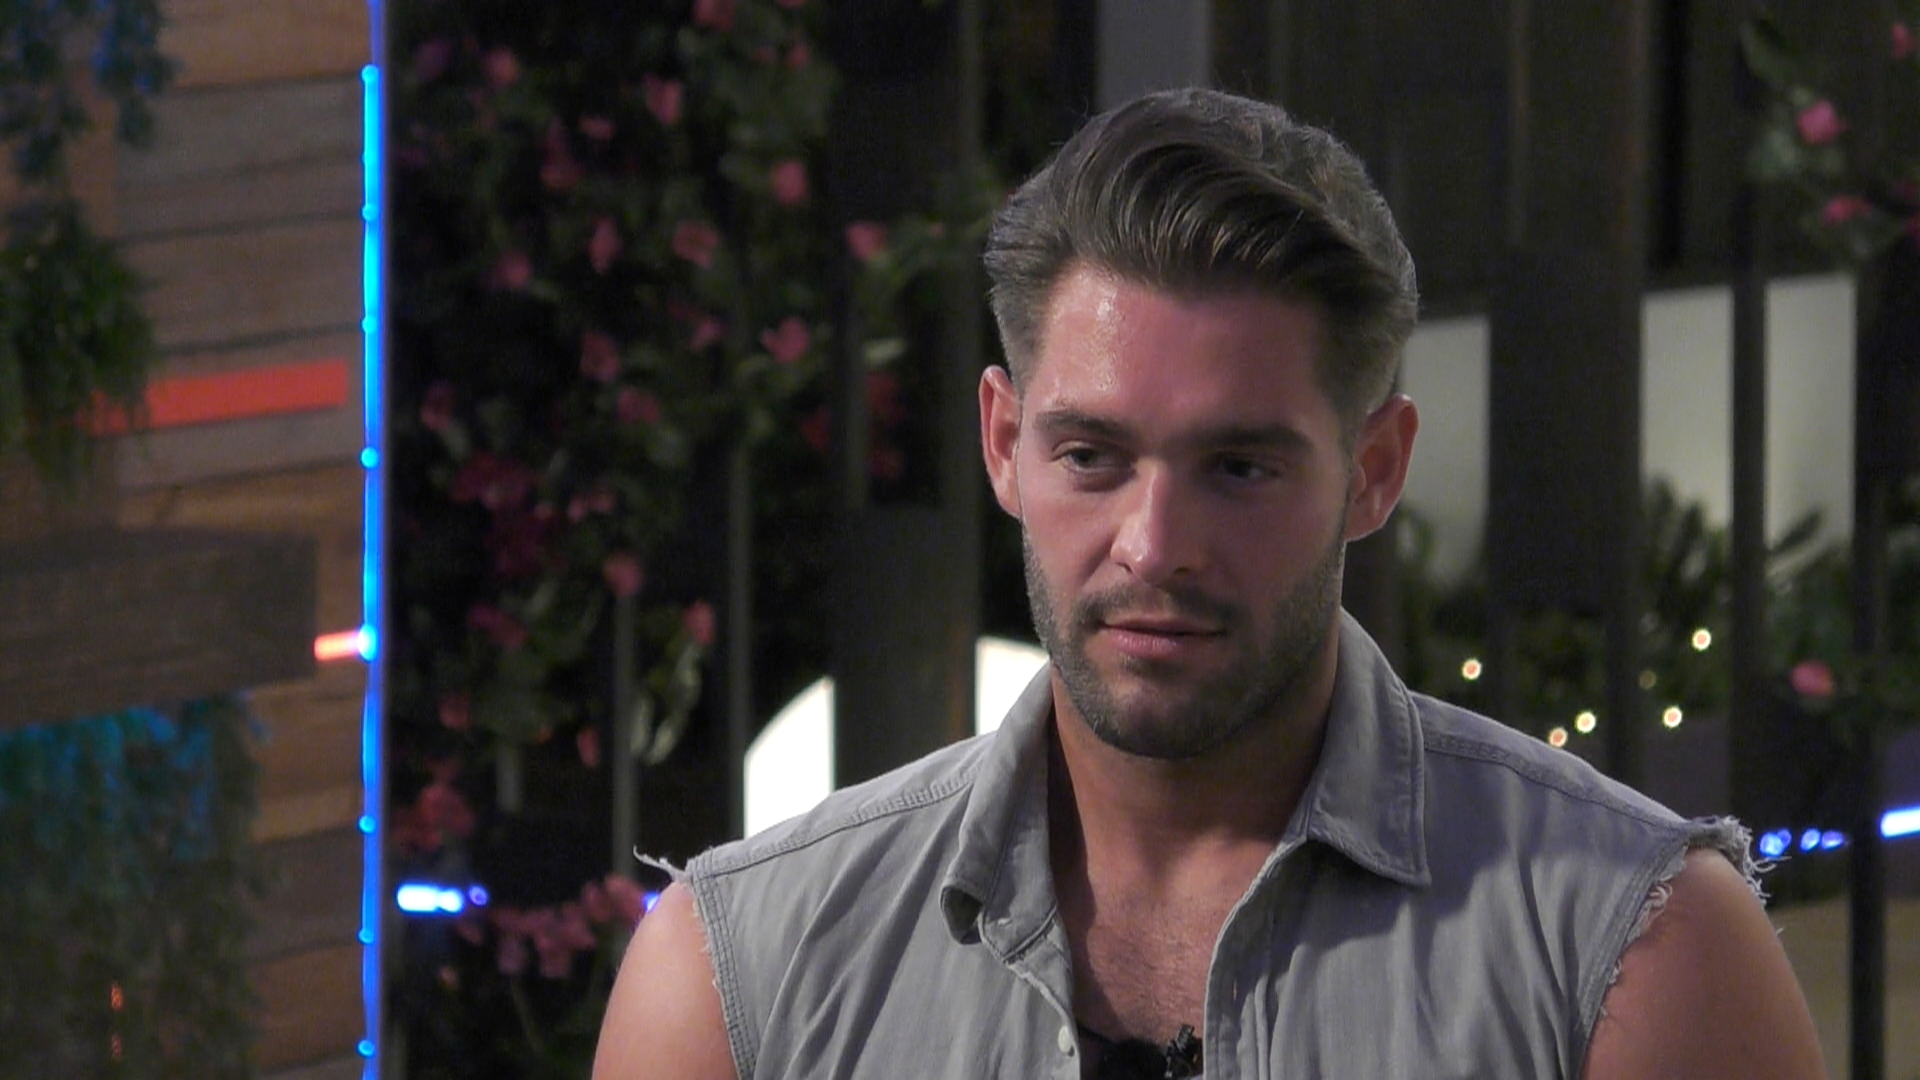 Love Island: Jonny is wrong about feminism but we should give him a break